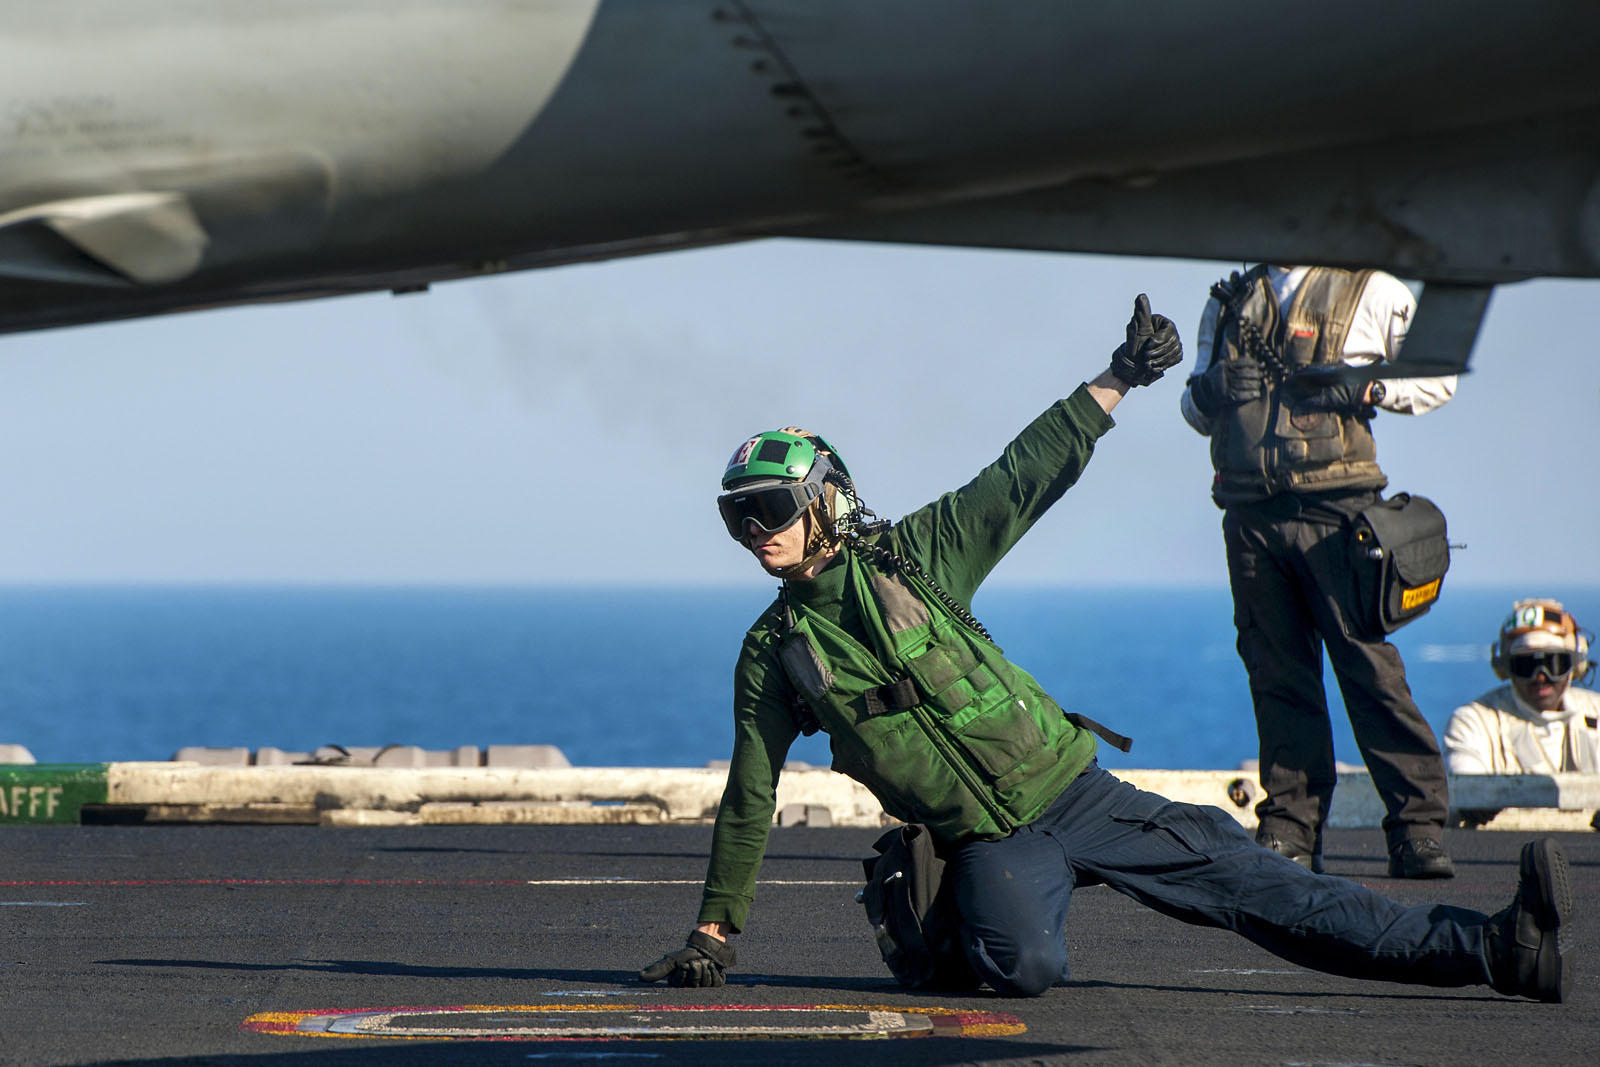 F/A-18E Super Hornet cleared for launch from USS Carl Vinson, Jan 3rd 2015 (US Navy/ John Philip Wagner Jr)